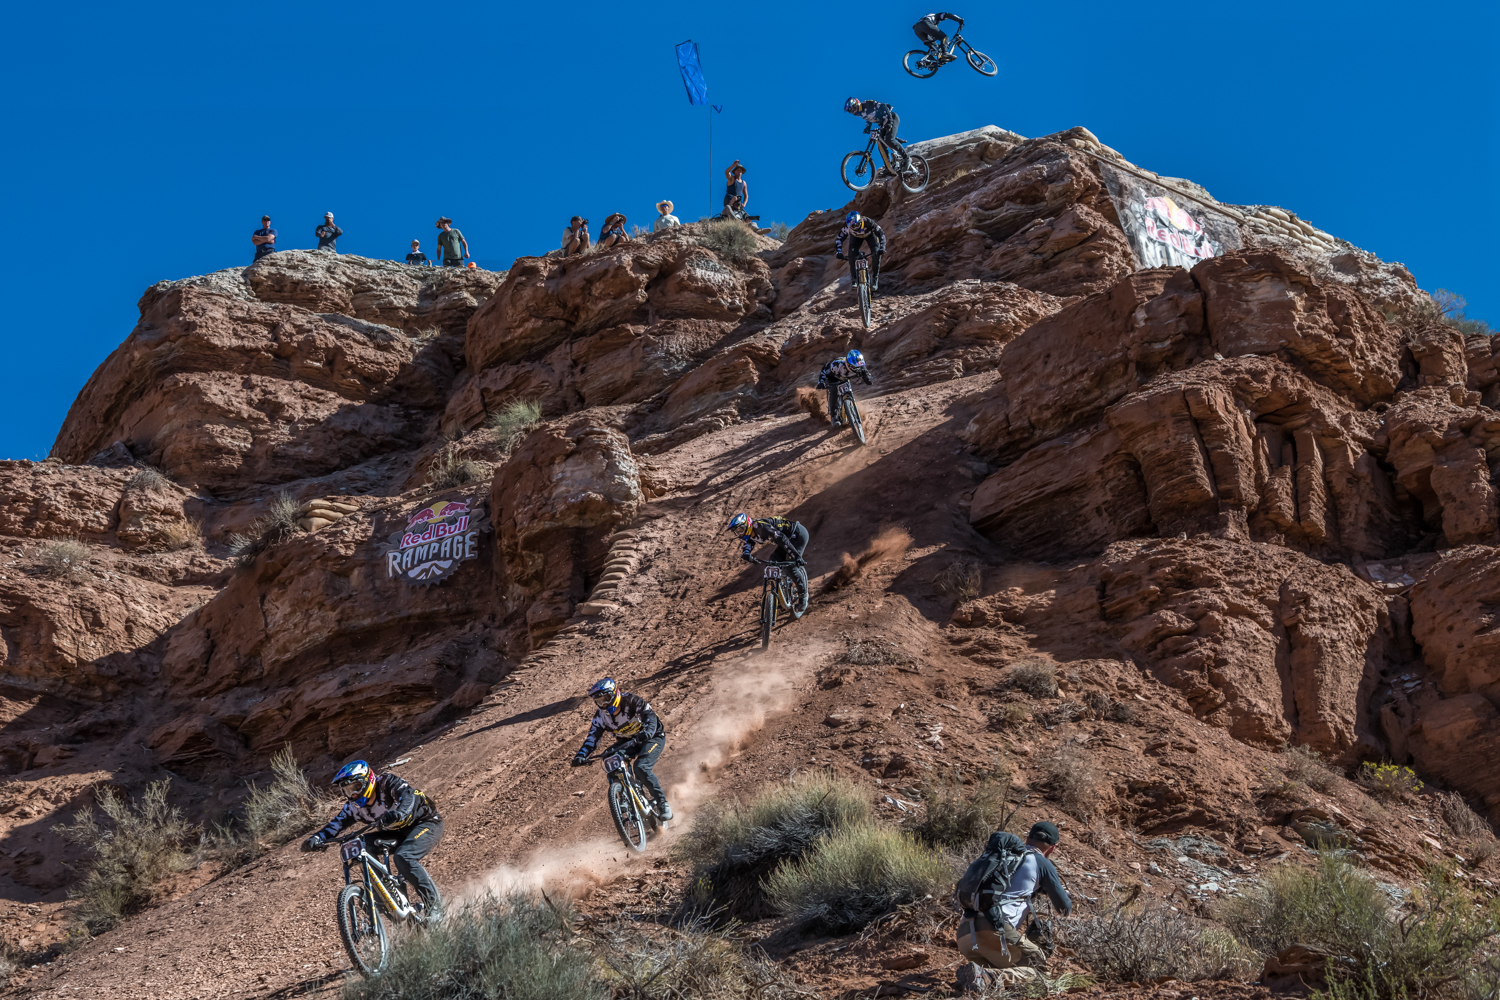 Red Bull Rampage >> Red Bull Rampage 2018 Daredevil Guinea Pigs Break Ground